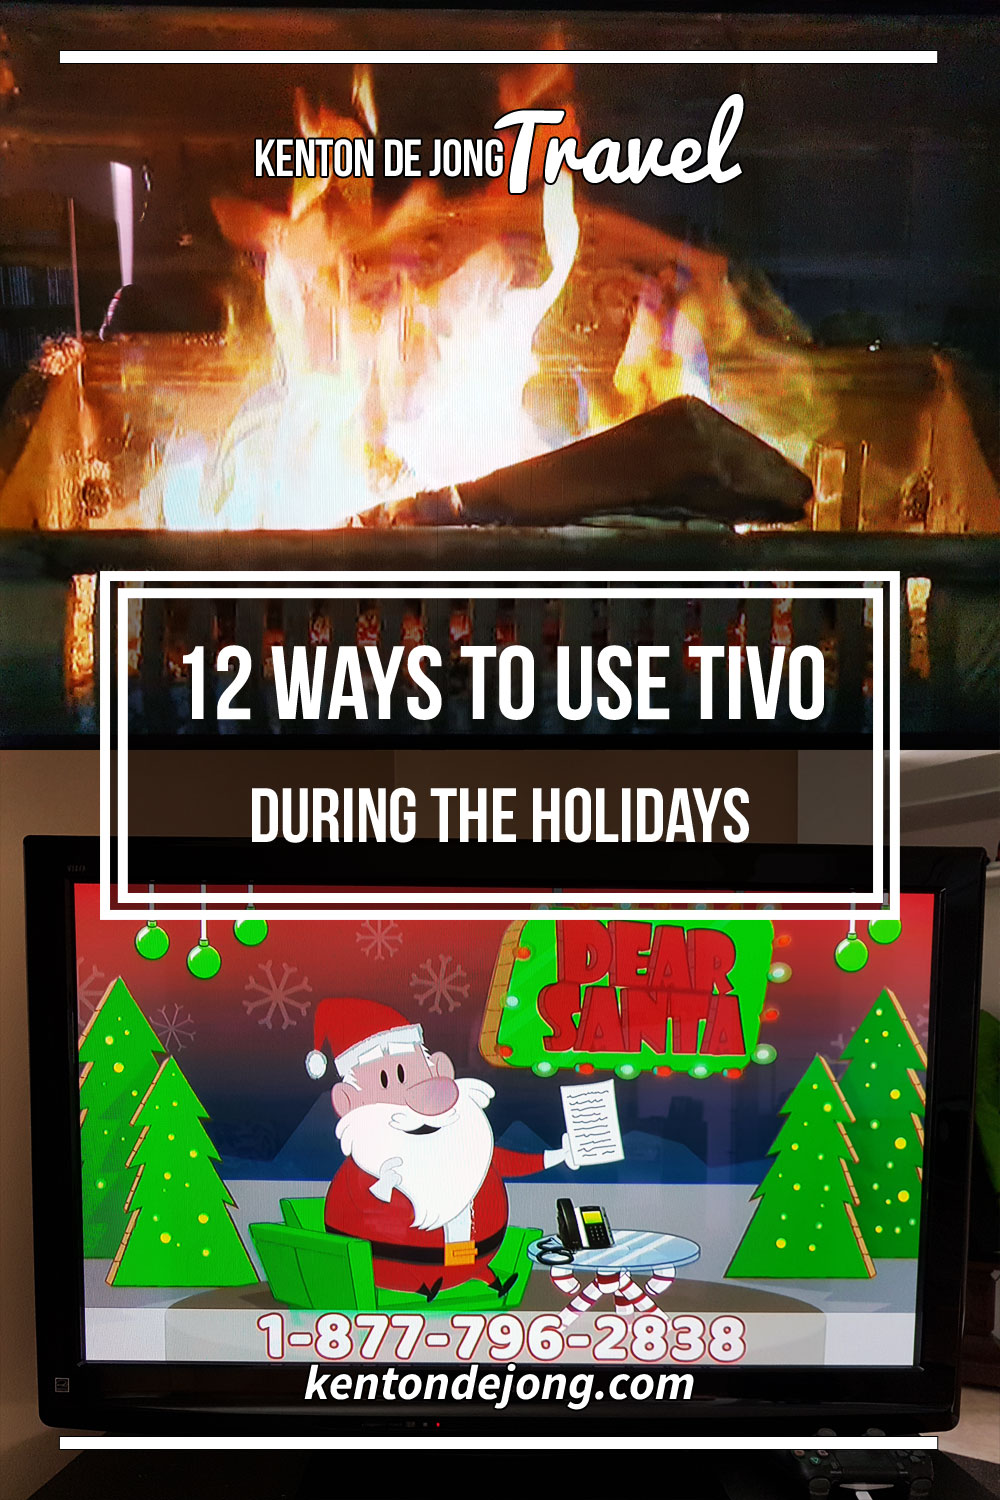 12 Ways to Use TiVo During the Holidays